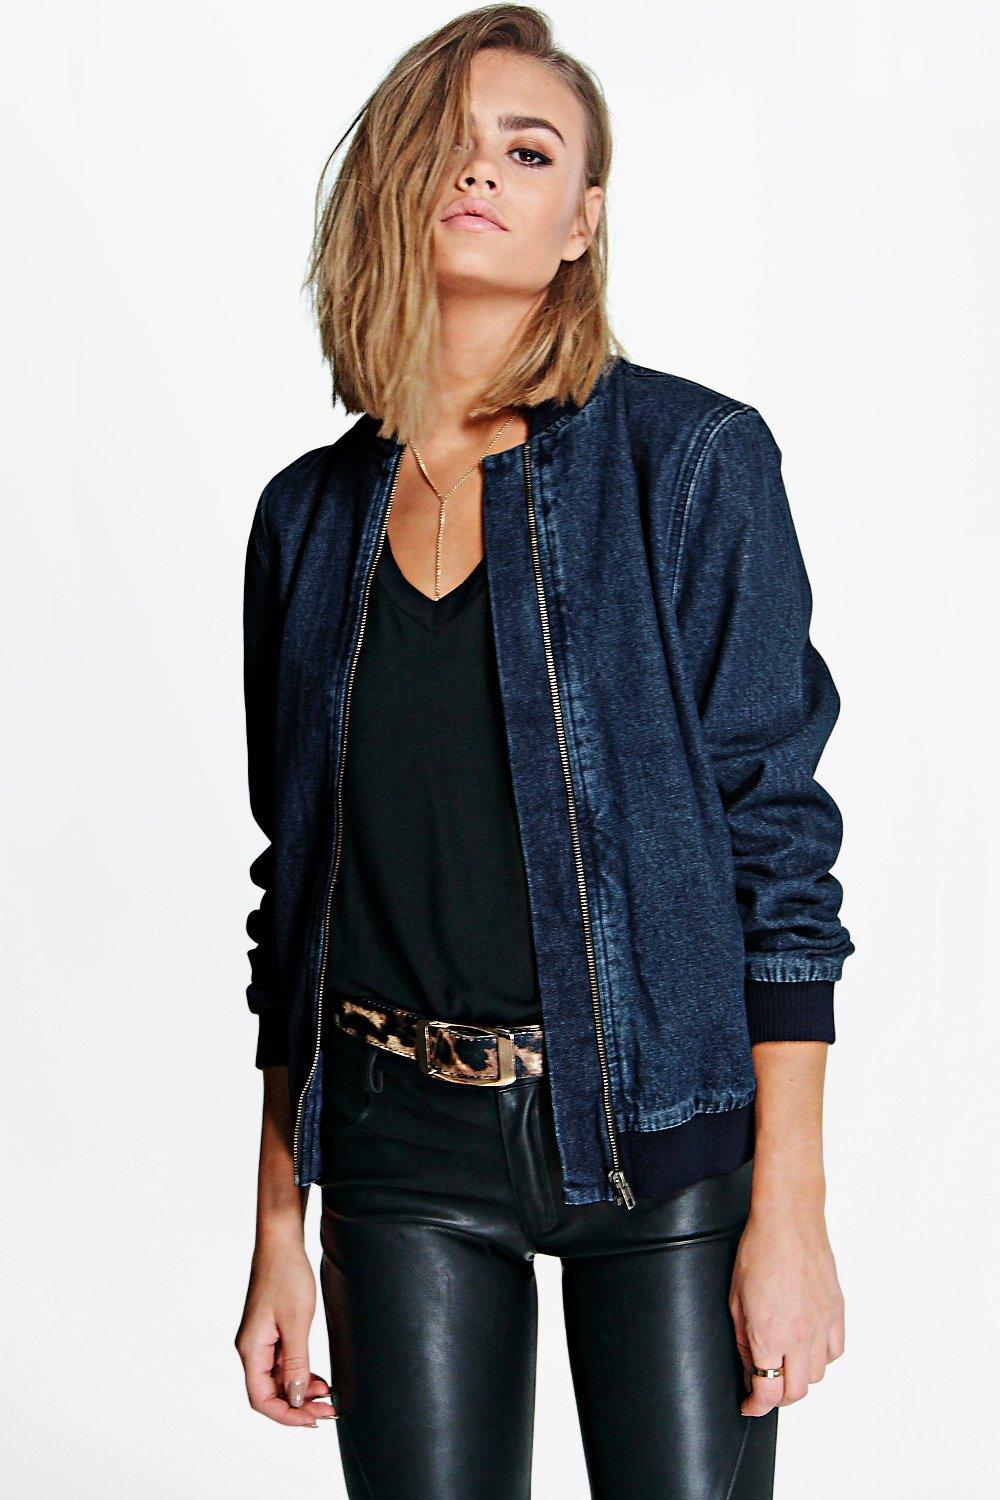 Men's Denim & Supply Ralph Lauren Jackets Founded in , Denim & Supply Ralph Lauren is a younger, more bohemian line of Ralph Lauren's iconic house of fashion. The label pays homage to the main brand's heritage of all-American fashion, while taking a fresh approach to denim and sportswear.